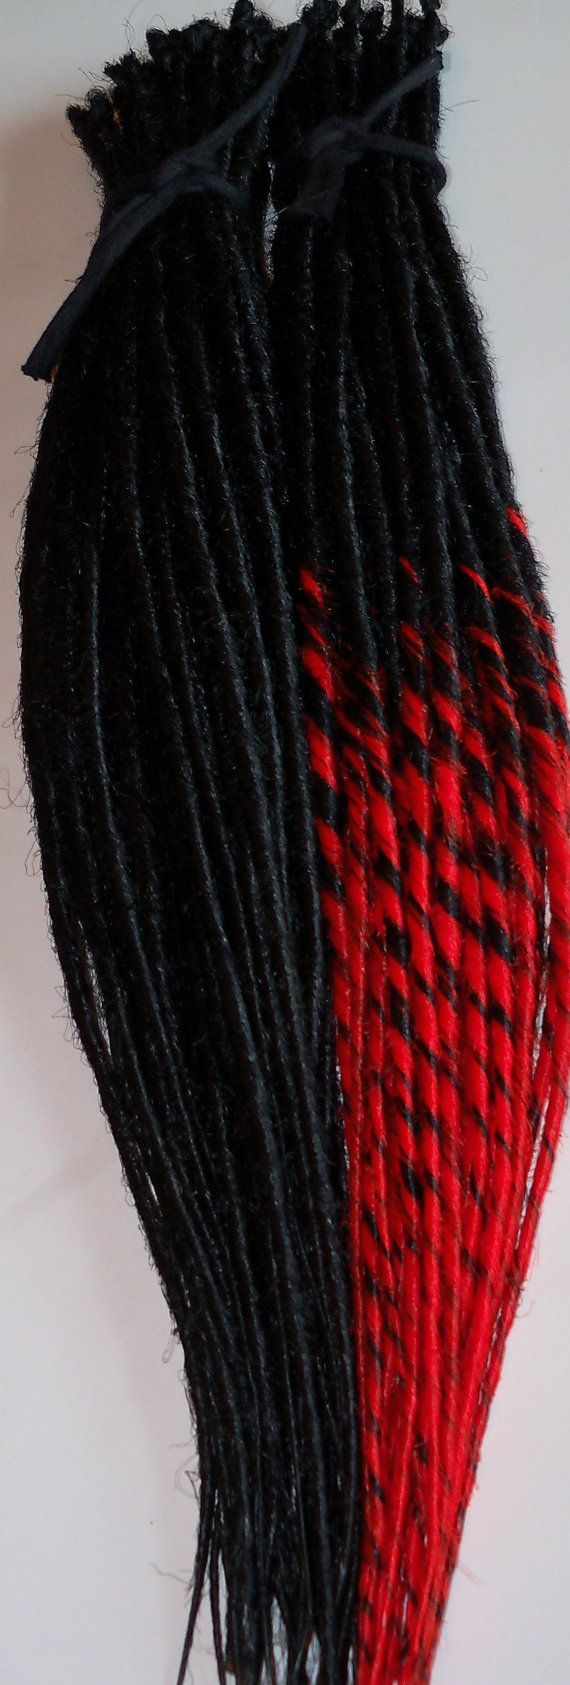 100 Synthetic Dreads Custom Hair Extensions by damnationhair, $150.00